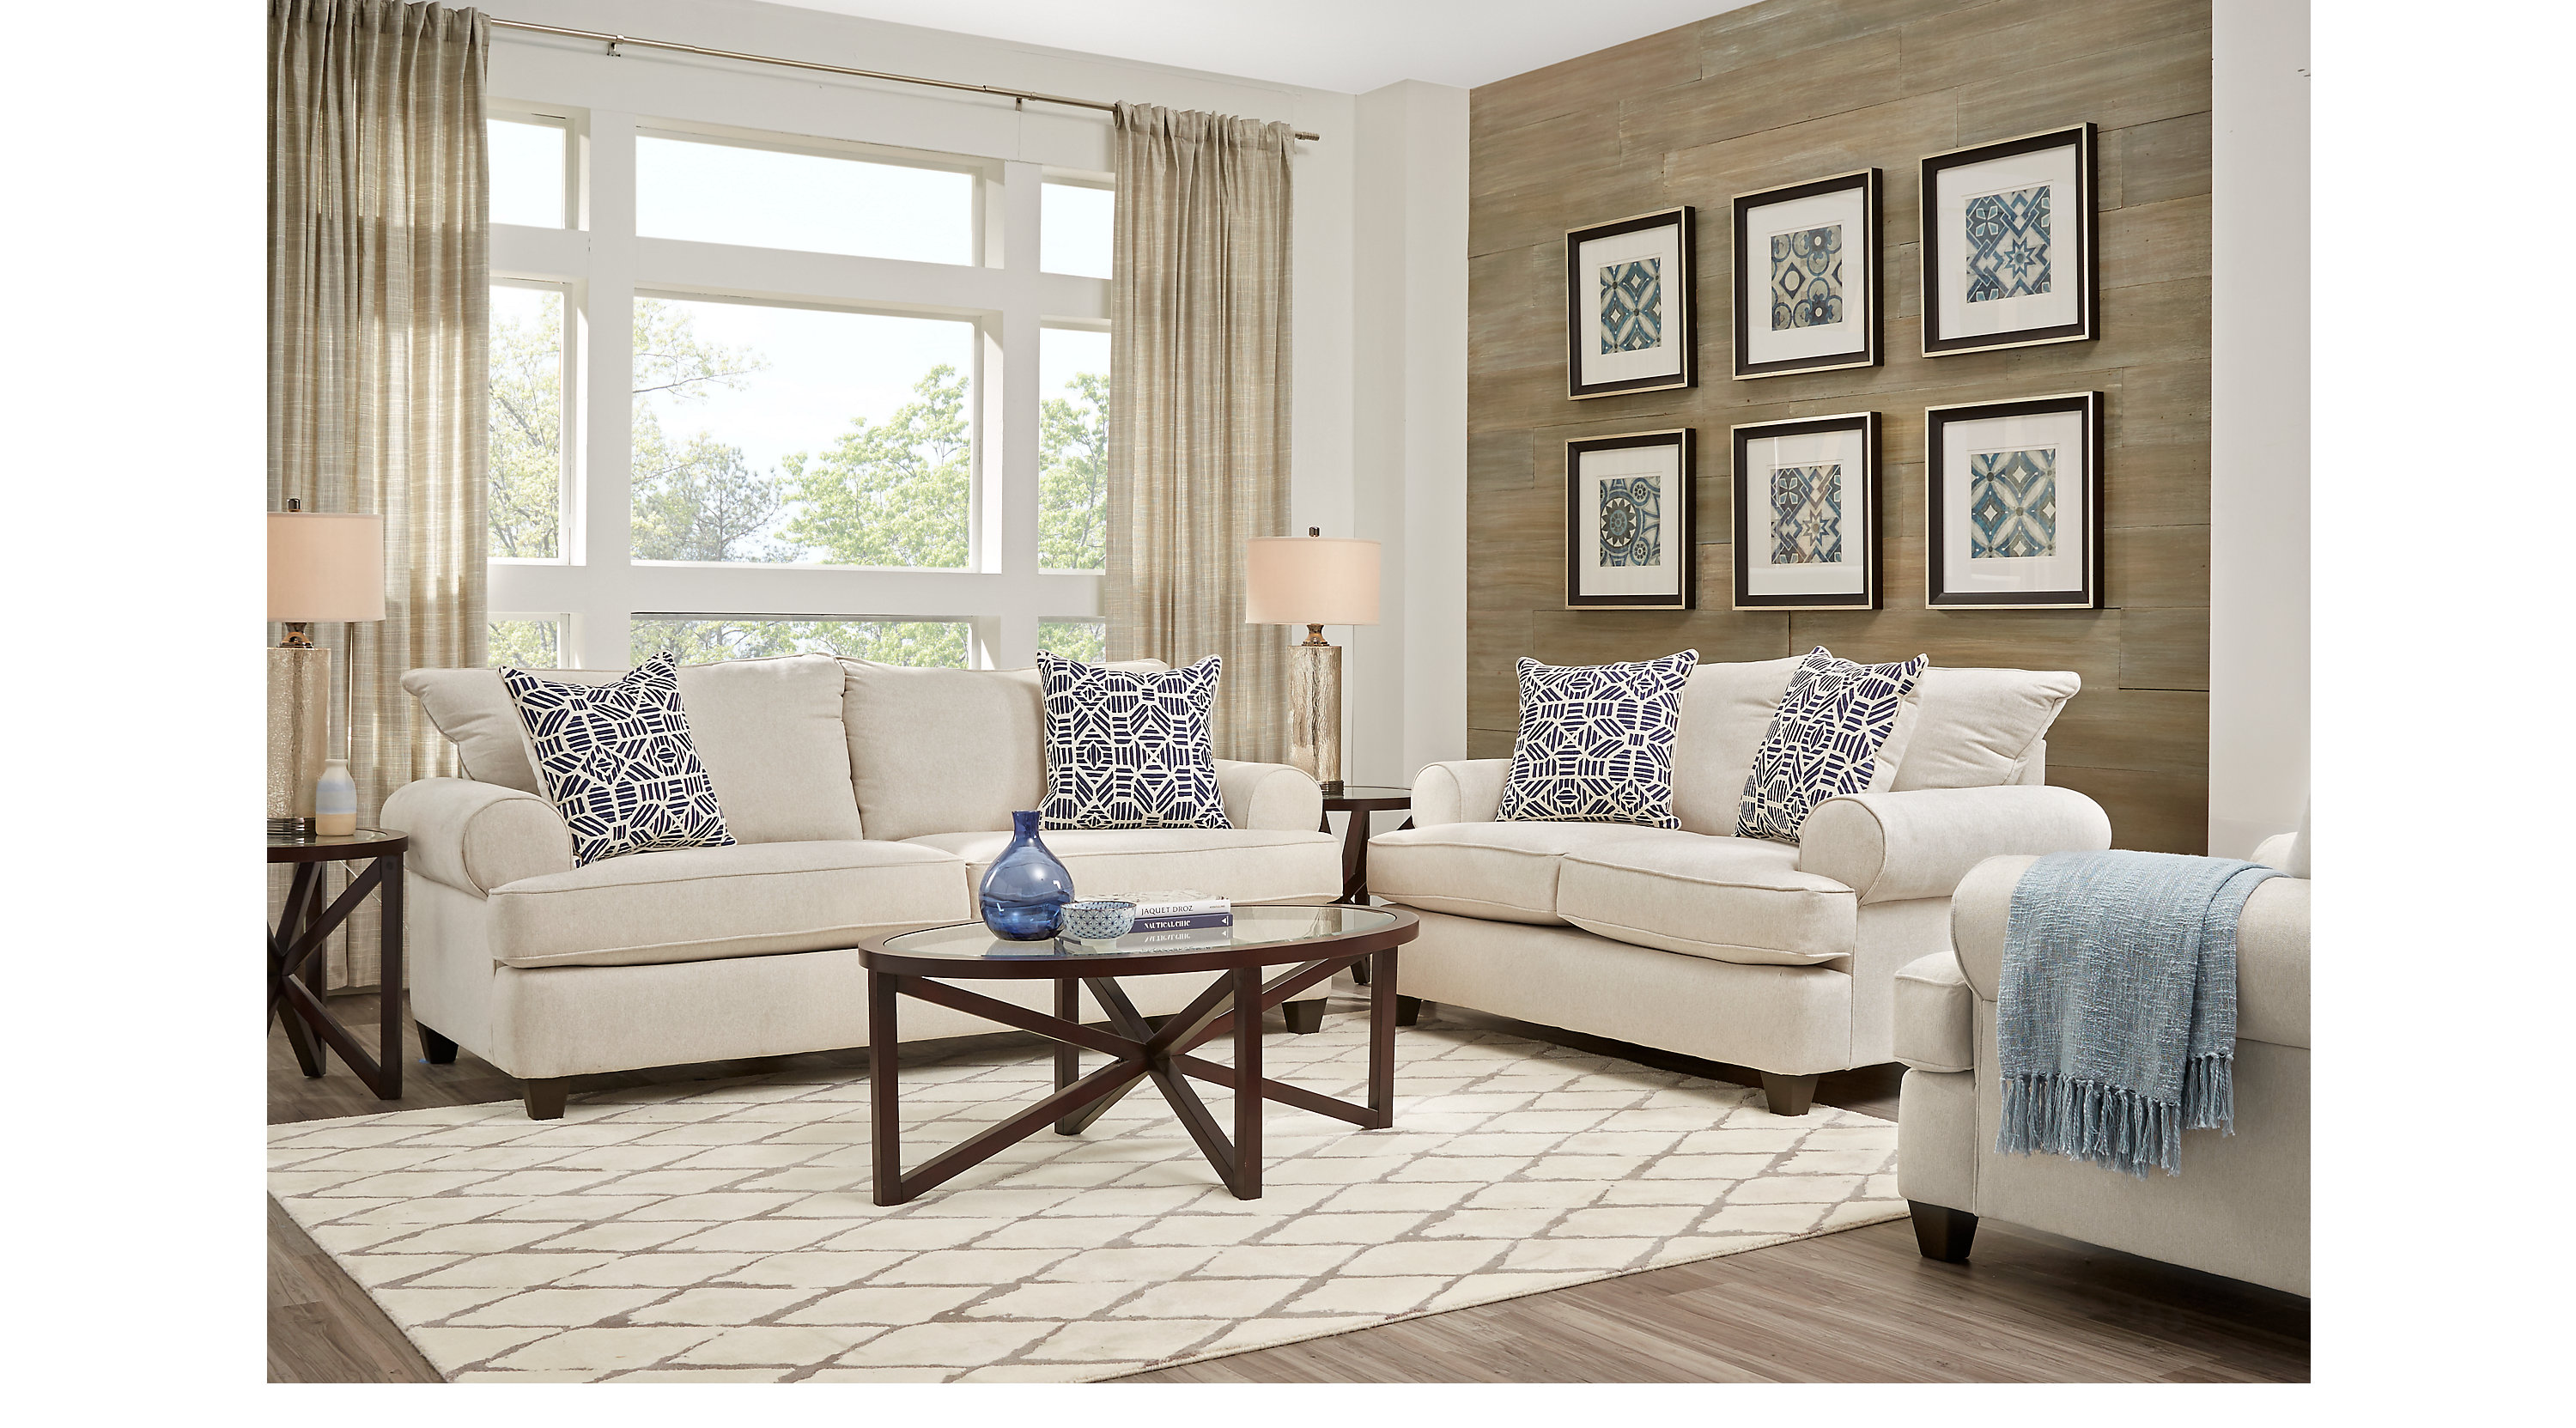 1 179 99 Emsworth Beige 7 Pc Living Room Classic Casual Textured